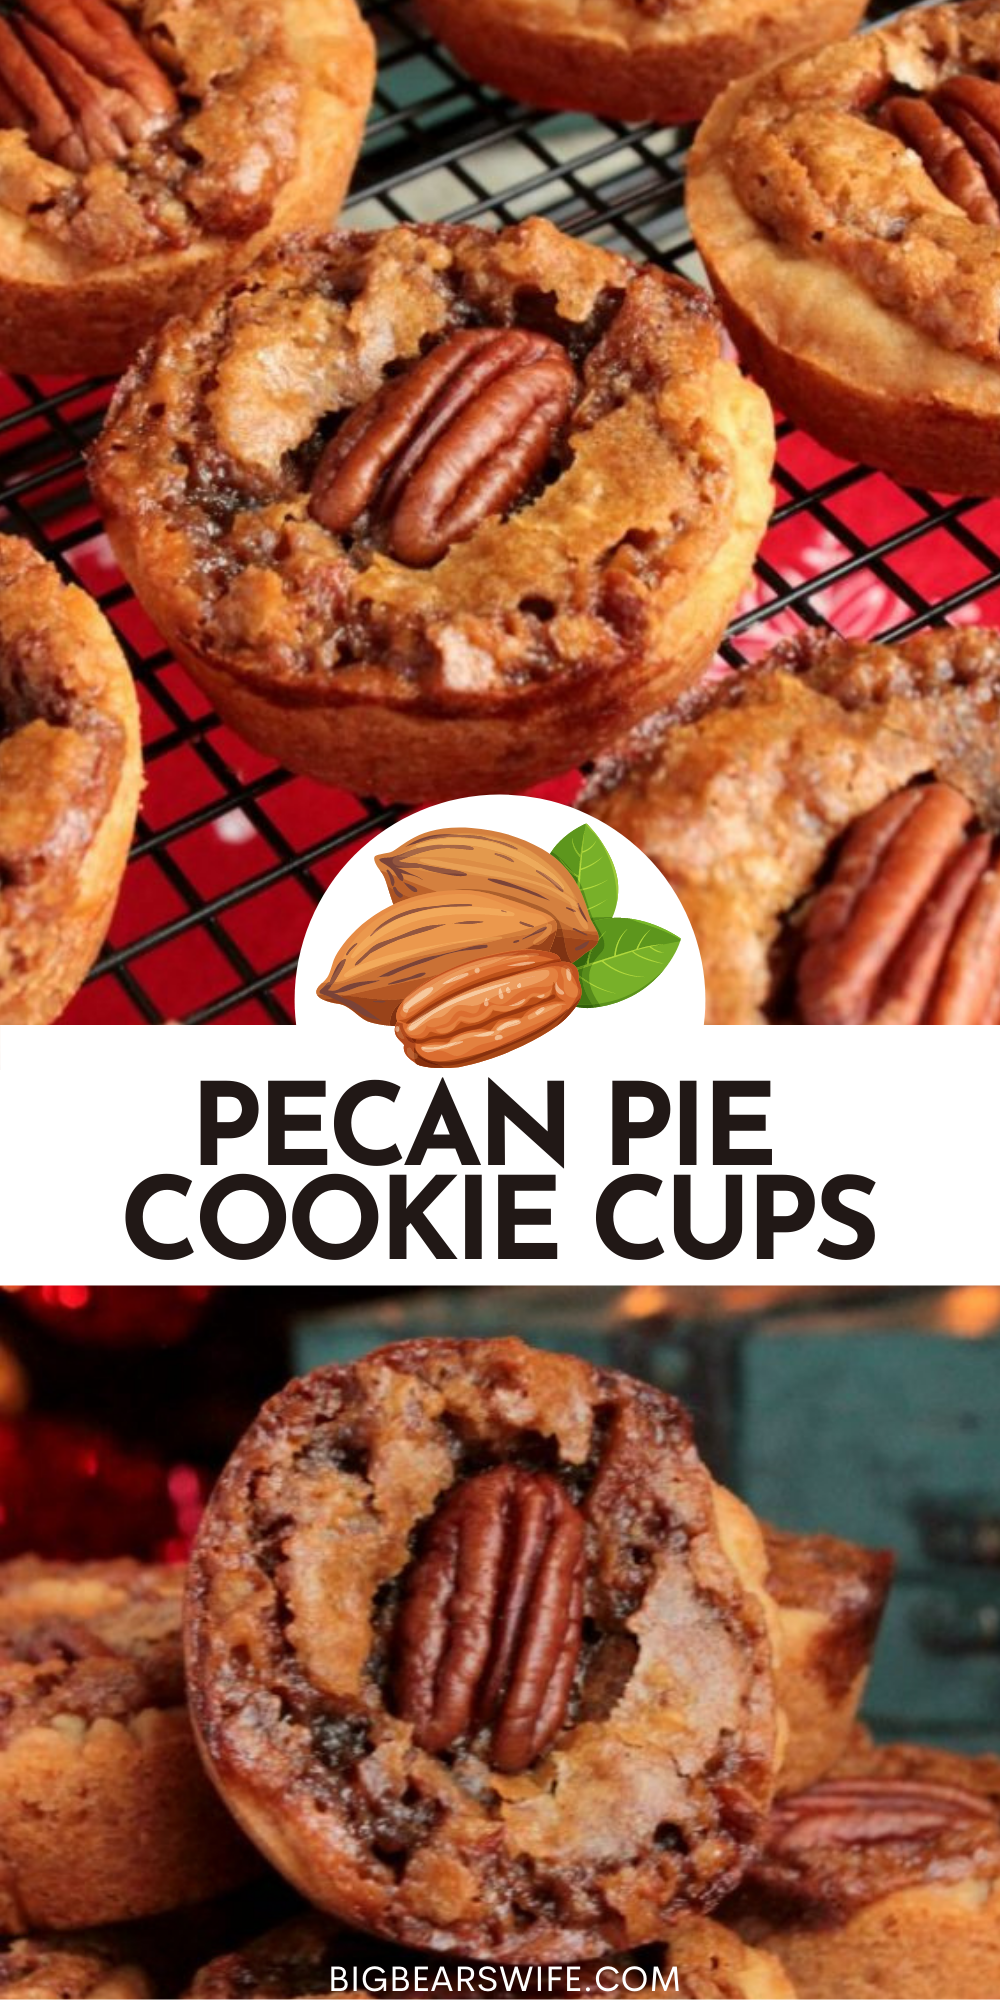 These Pecan Pie Cookie Cups have asweet pecan pie filling baked inside of a sugar cookie crust to create the perfect mini pecan pie dessert for your next holiday party! via @bigbearswife